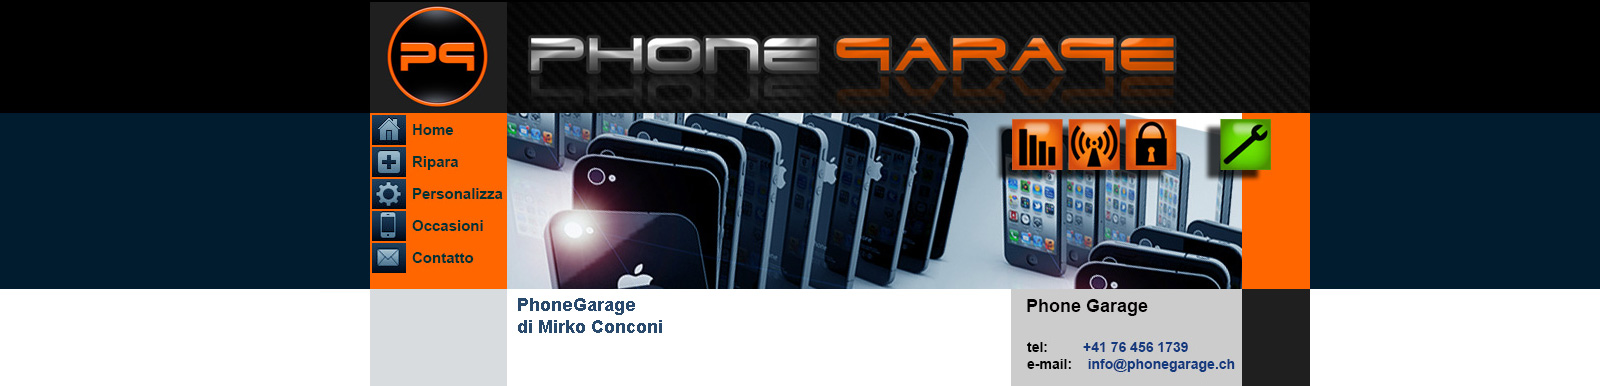 sito internet phonegarage